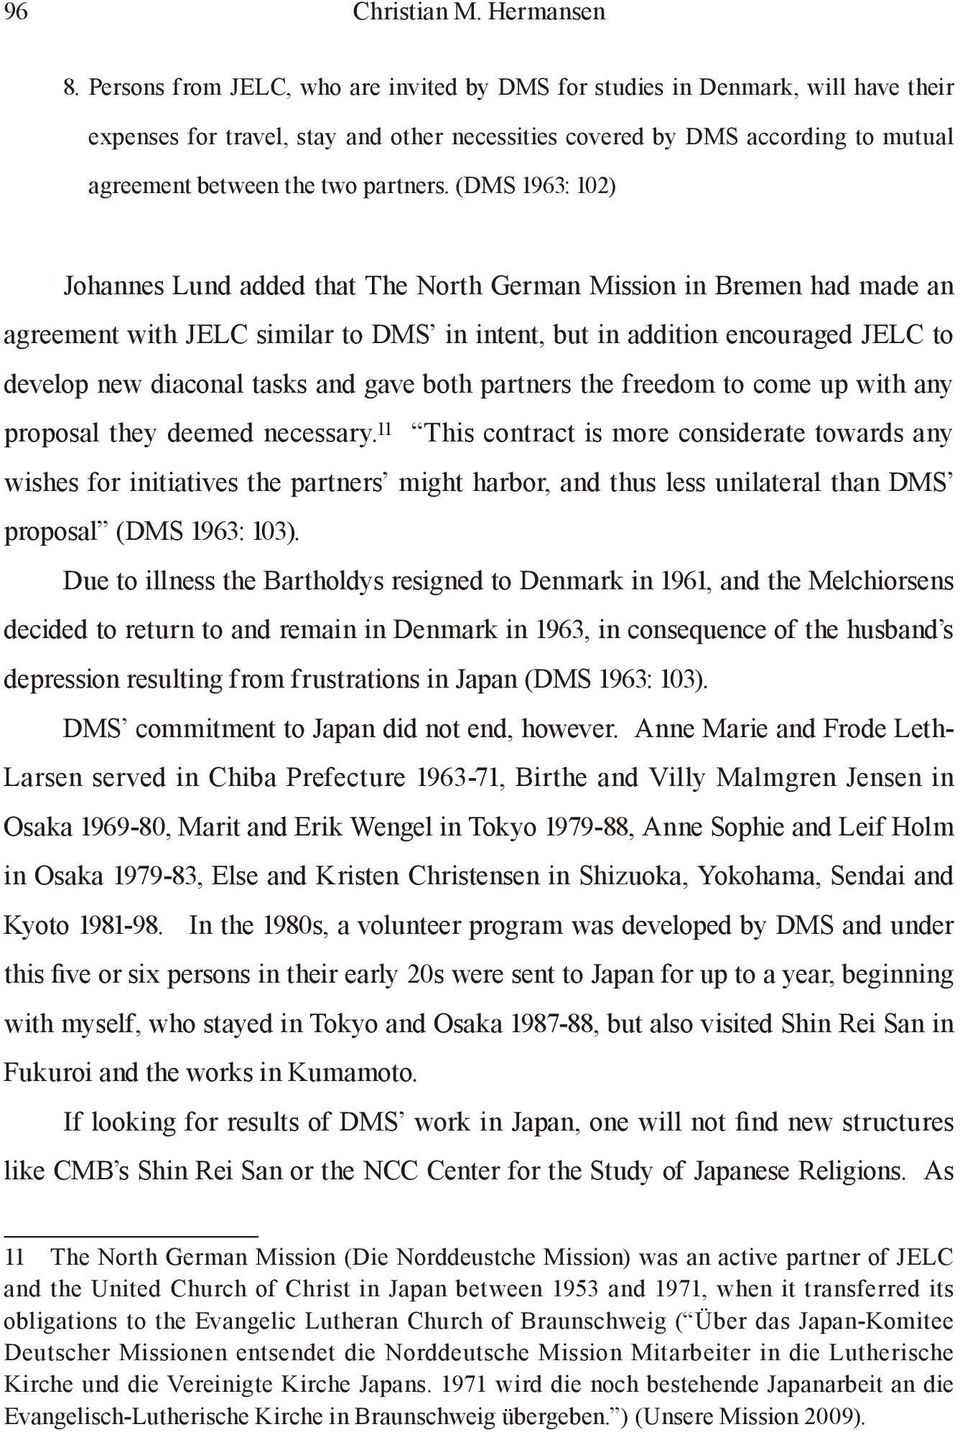 (DMS 1963: 102) Johannes Lund added that The North German Mission in Bremen had made an agreement with JELC similar to DMS in intent, but in addition encouraged JELC to develop new diaconal tasks and